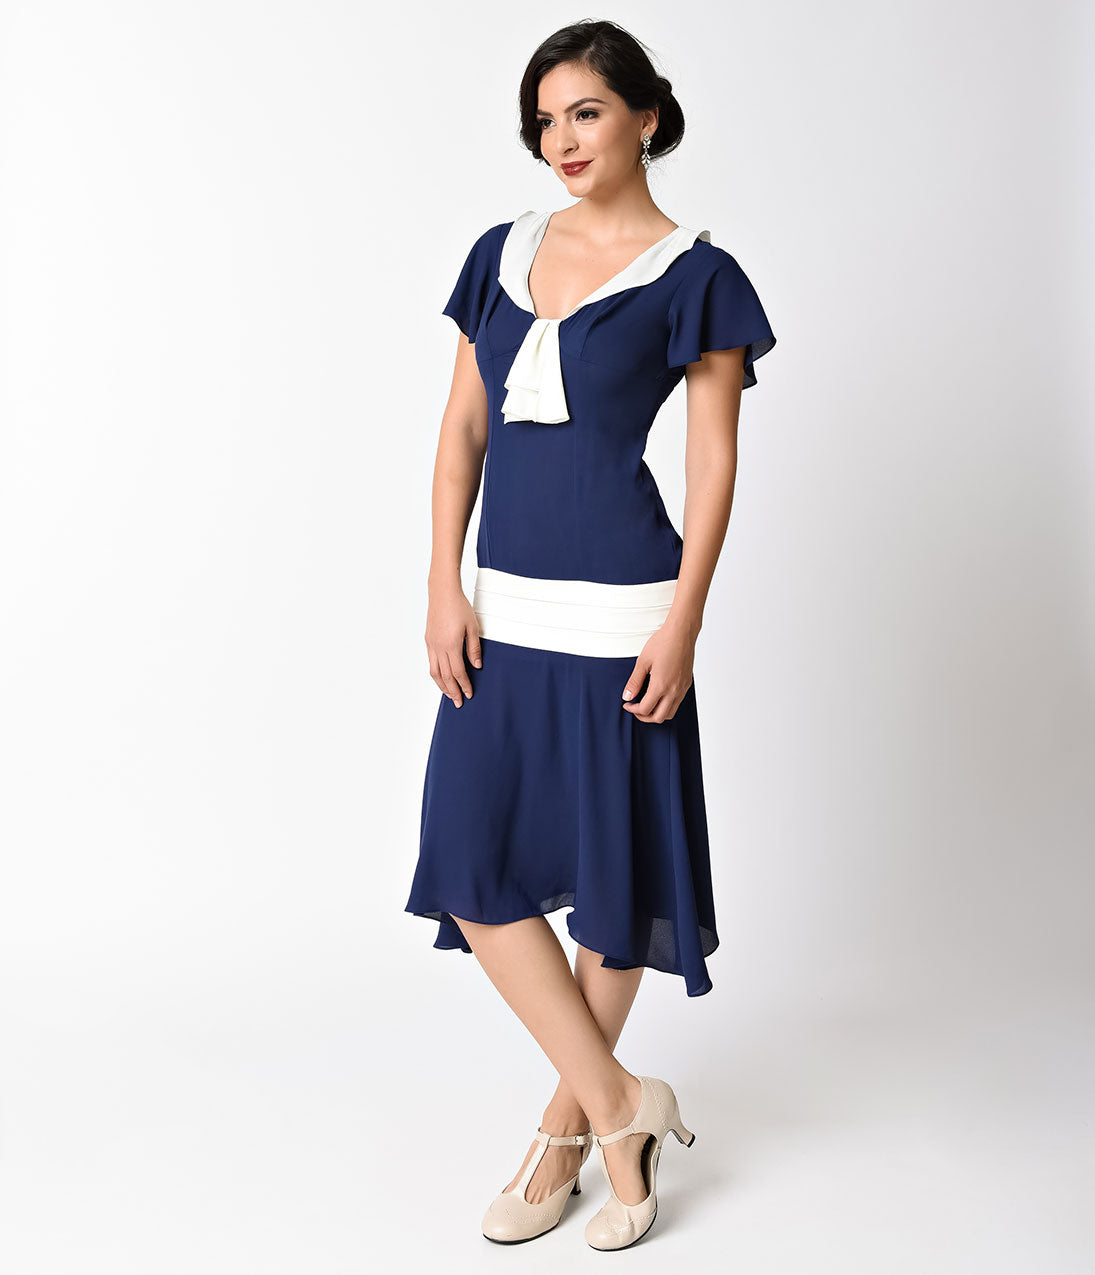 1920s Tennis Clothes | Womens and Men's Outfits Unique Vintage 1920S Style Navy Blue  Ivory Wilshire Chiffon Flapper Day Dress $88.00 AT vintagedancer.com